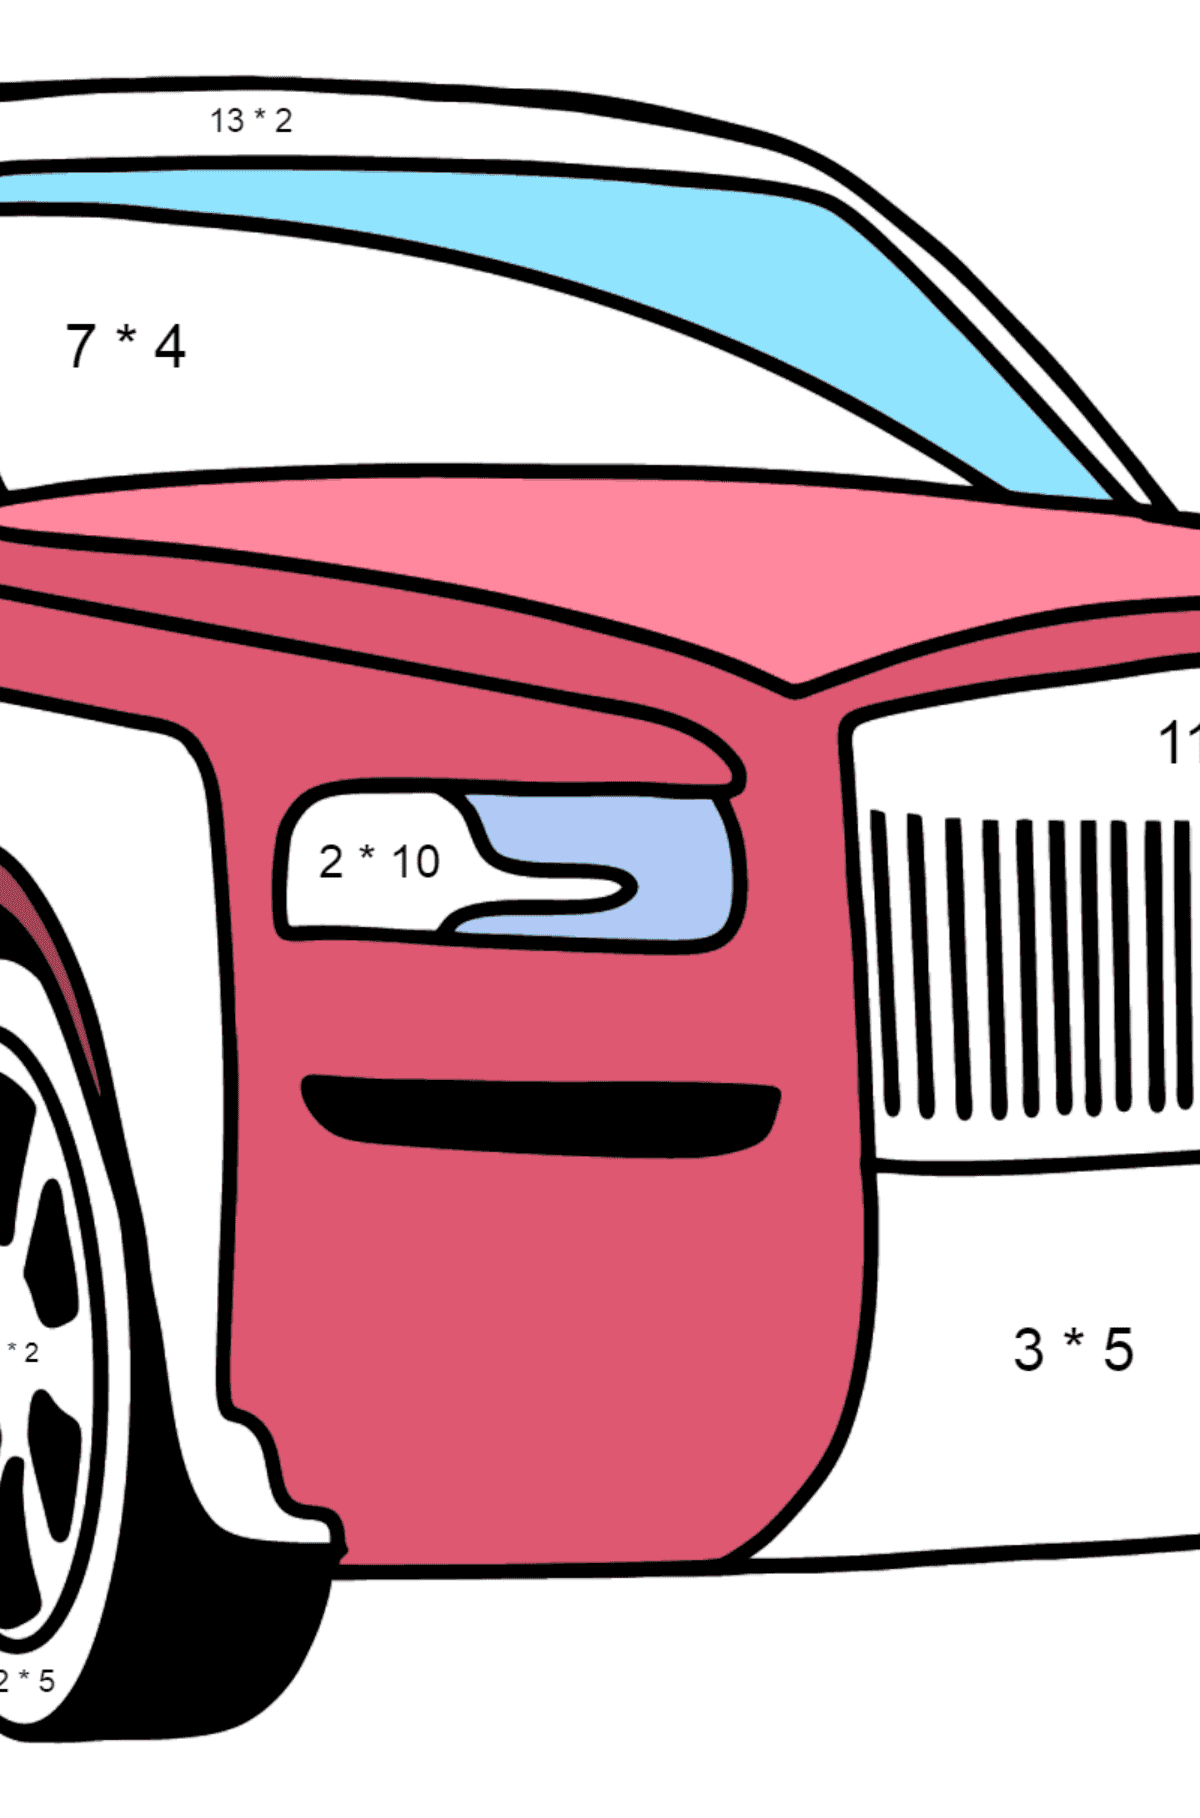 Rolls Royce Cullinan Car coloring page - Math Coloring - Multiplication for Kids